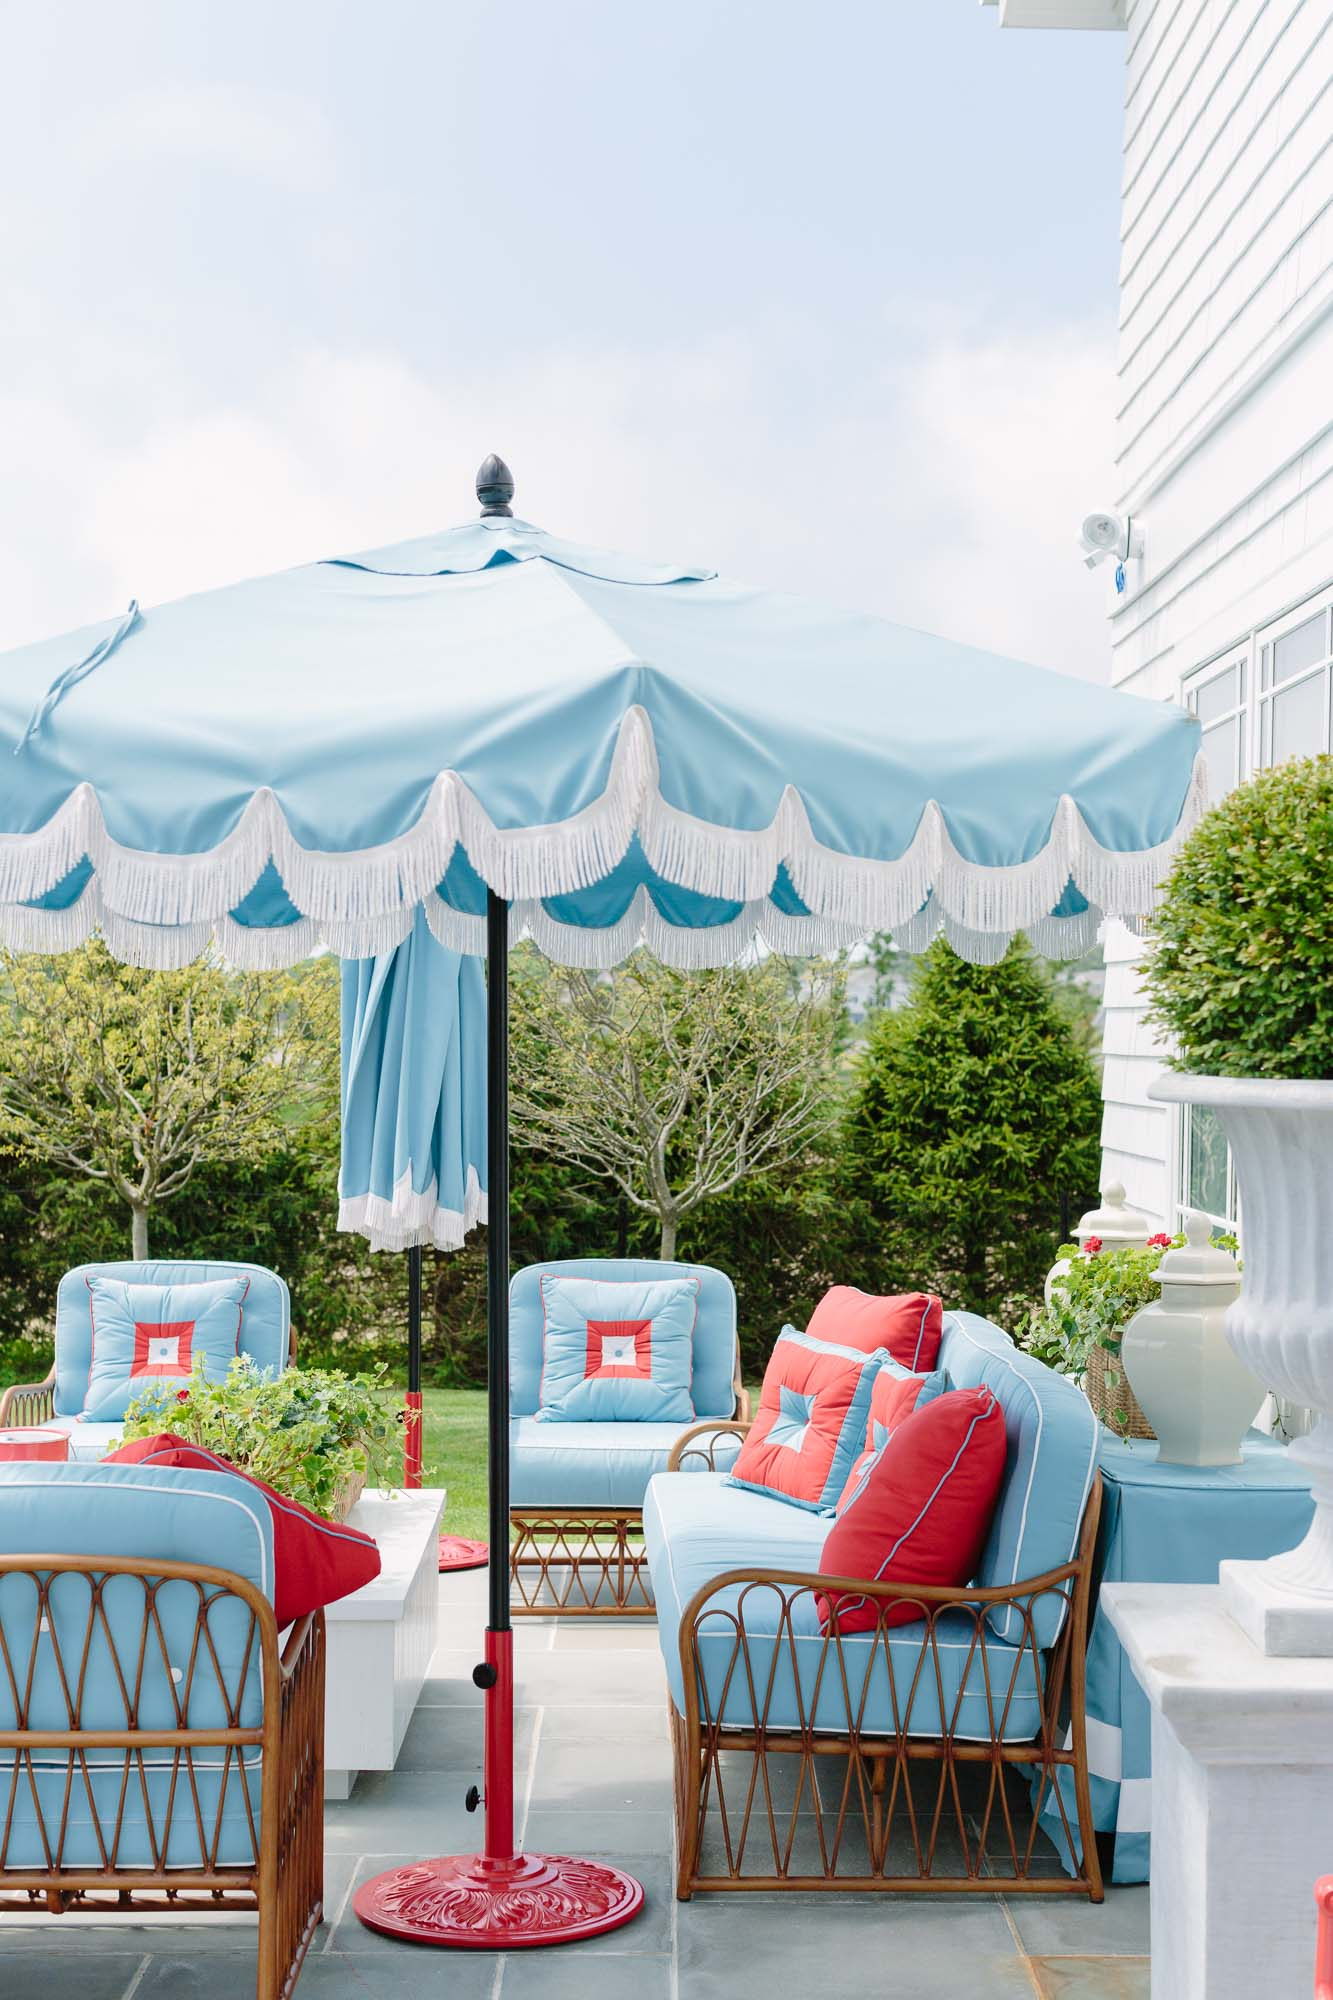 Danielle D. Rollins outdoor space at the 2019 Hampton Designer Showhouse